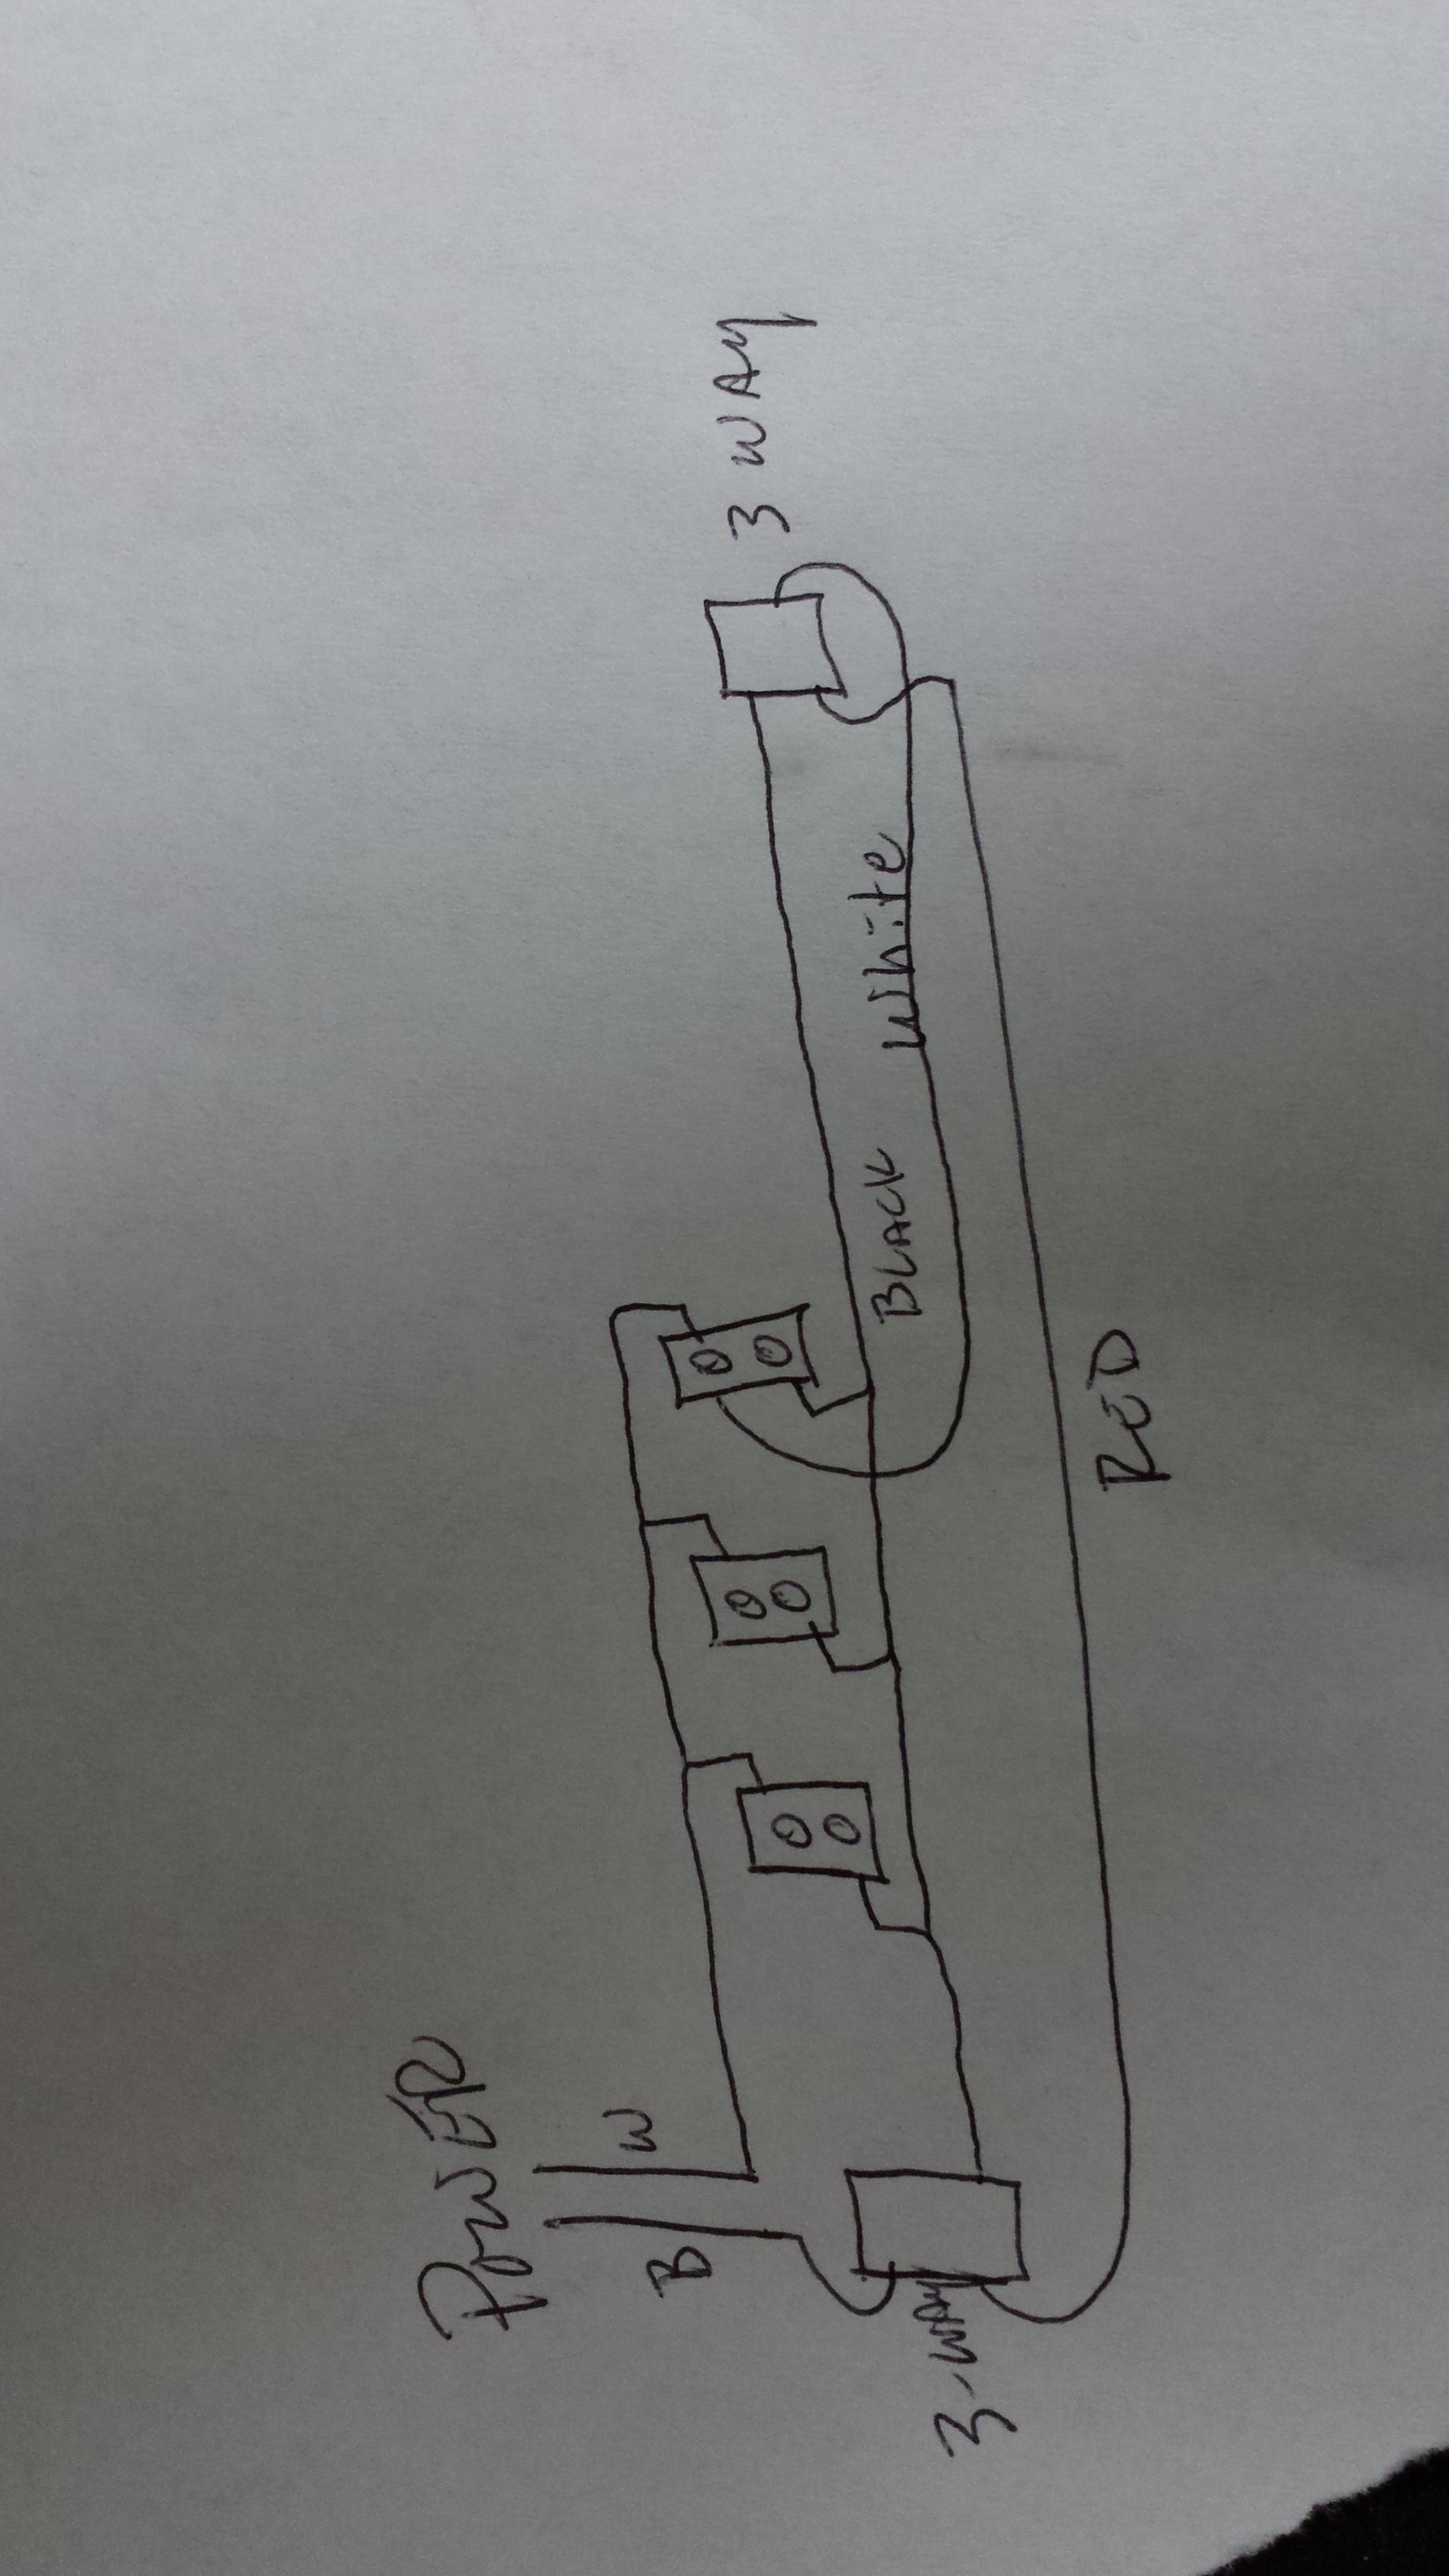 Wiring - 3 Way Switch With Multiple Outlets - Home Improvement Stack - Multiple Outlet Wiring Diagram